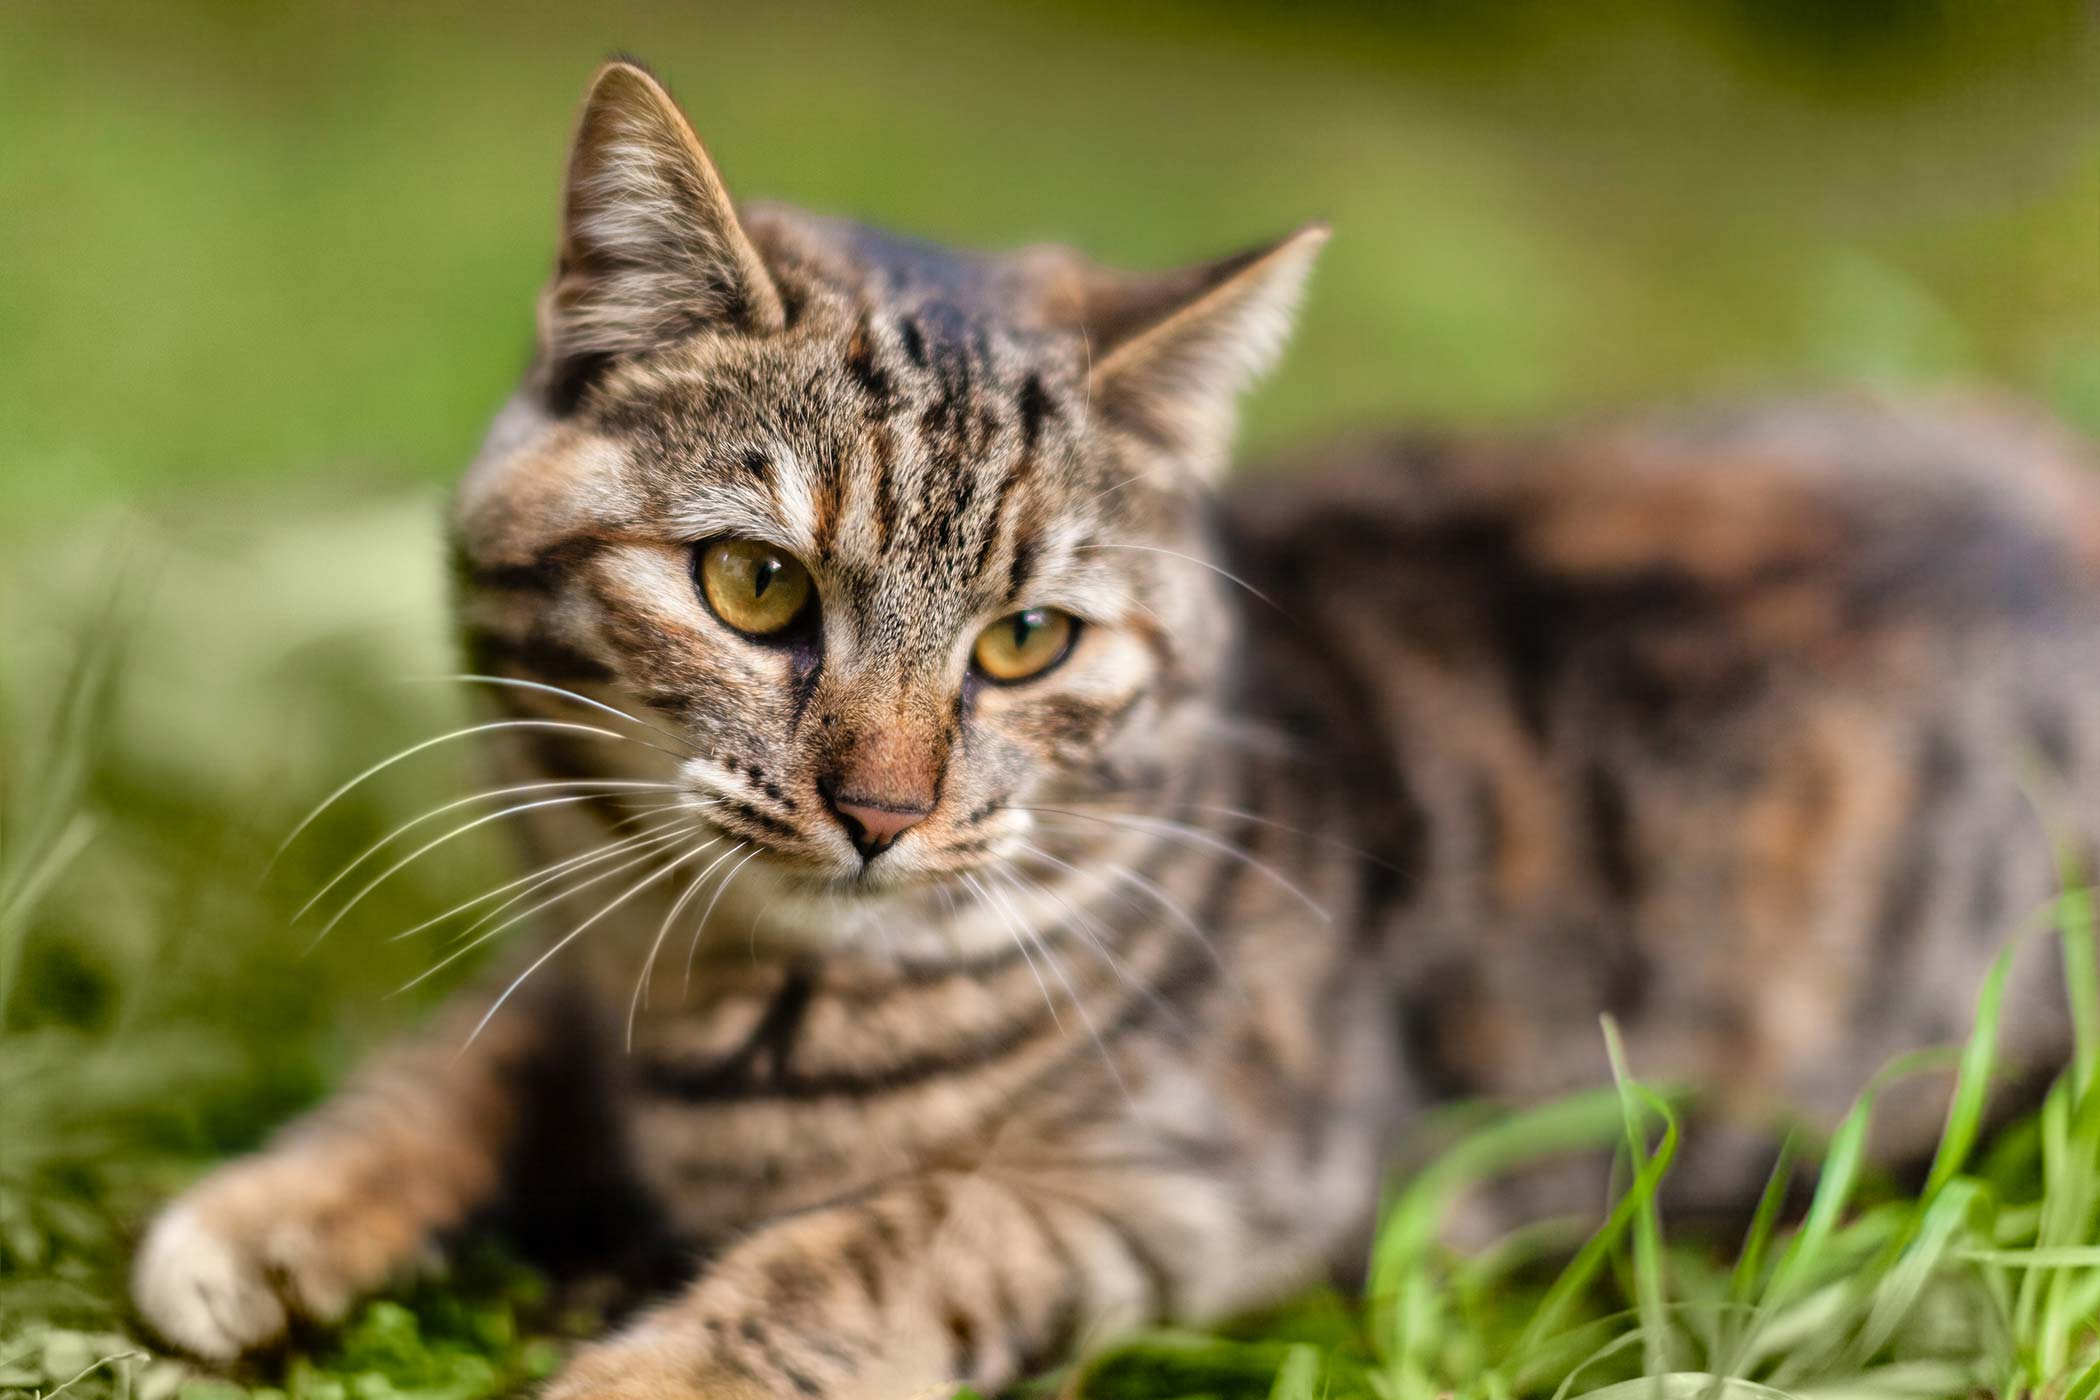 Degeneration of the Iris in the Eye in Cats